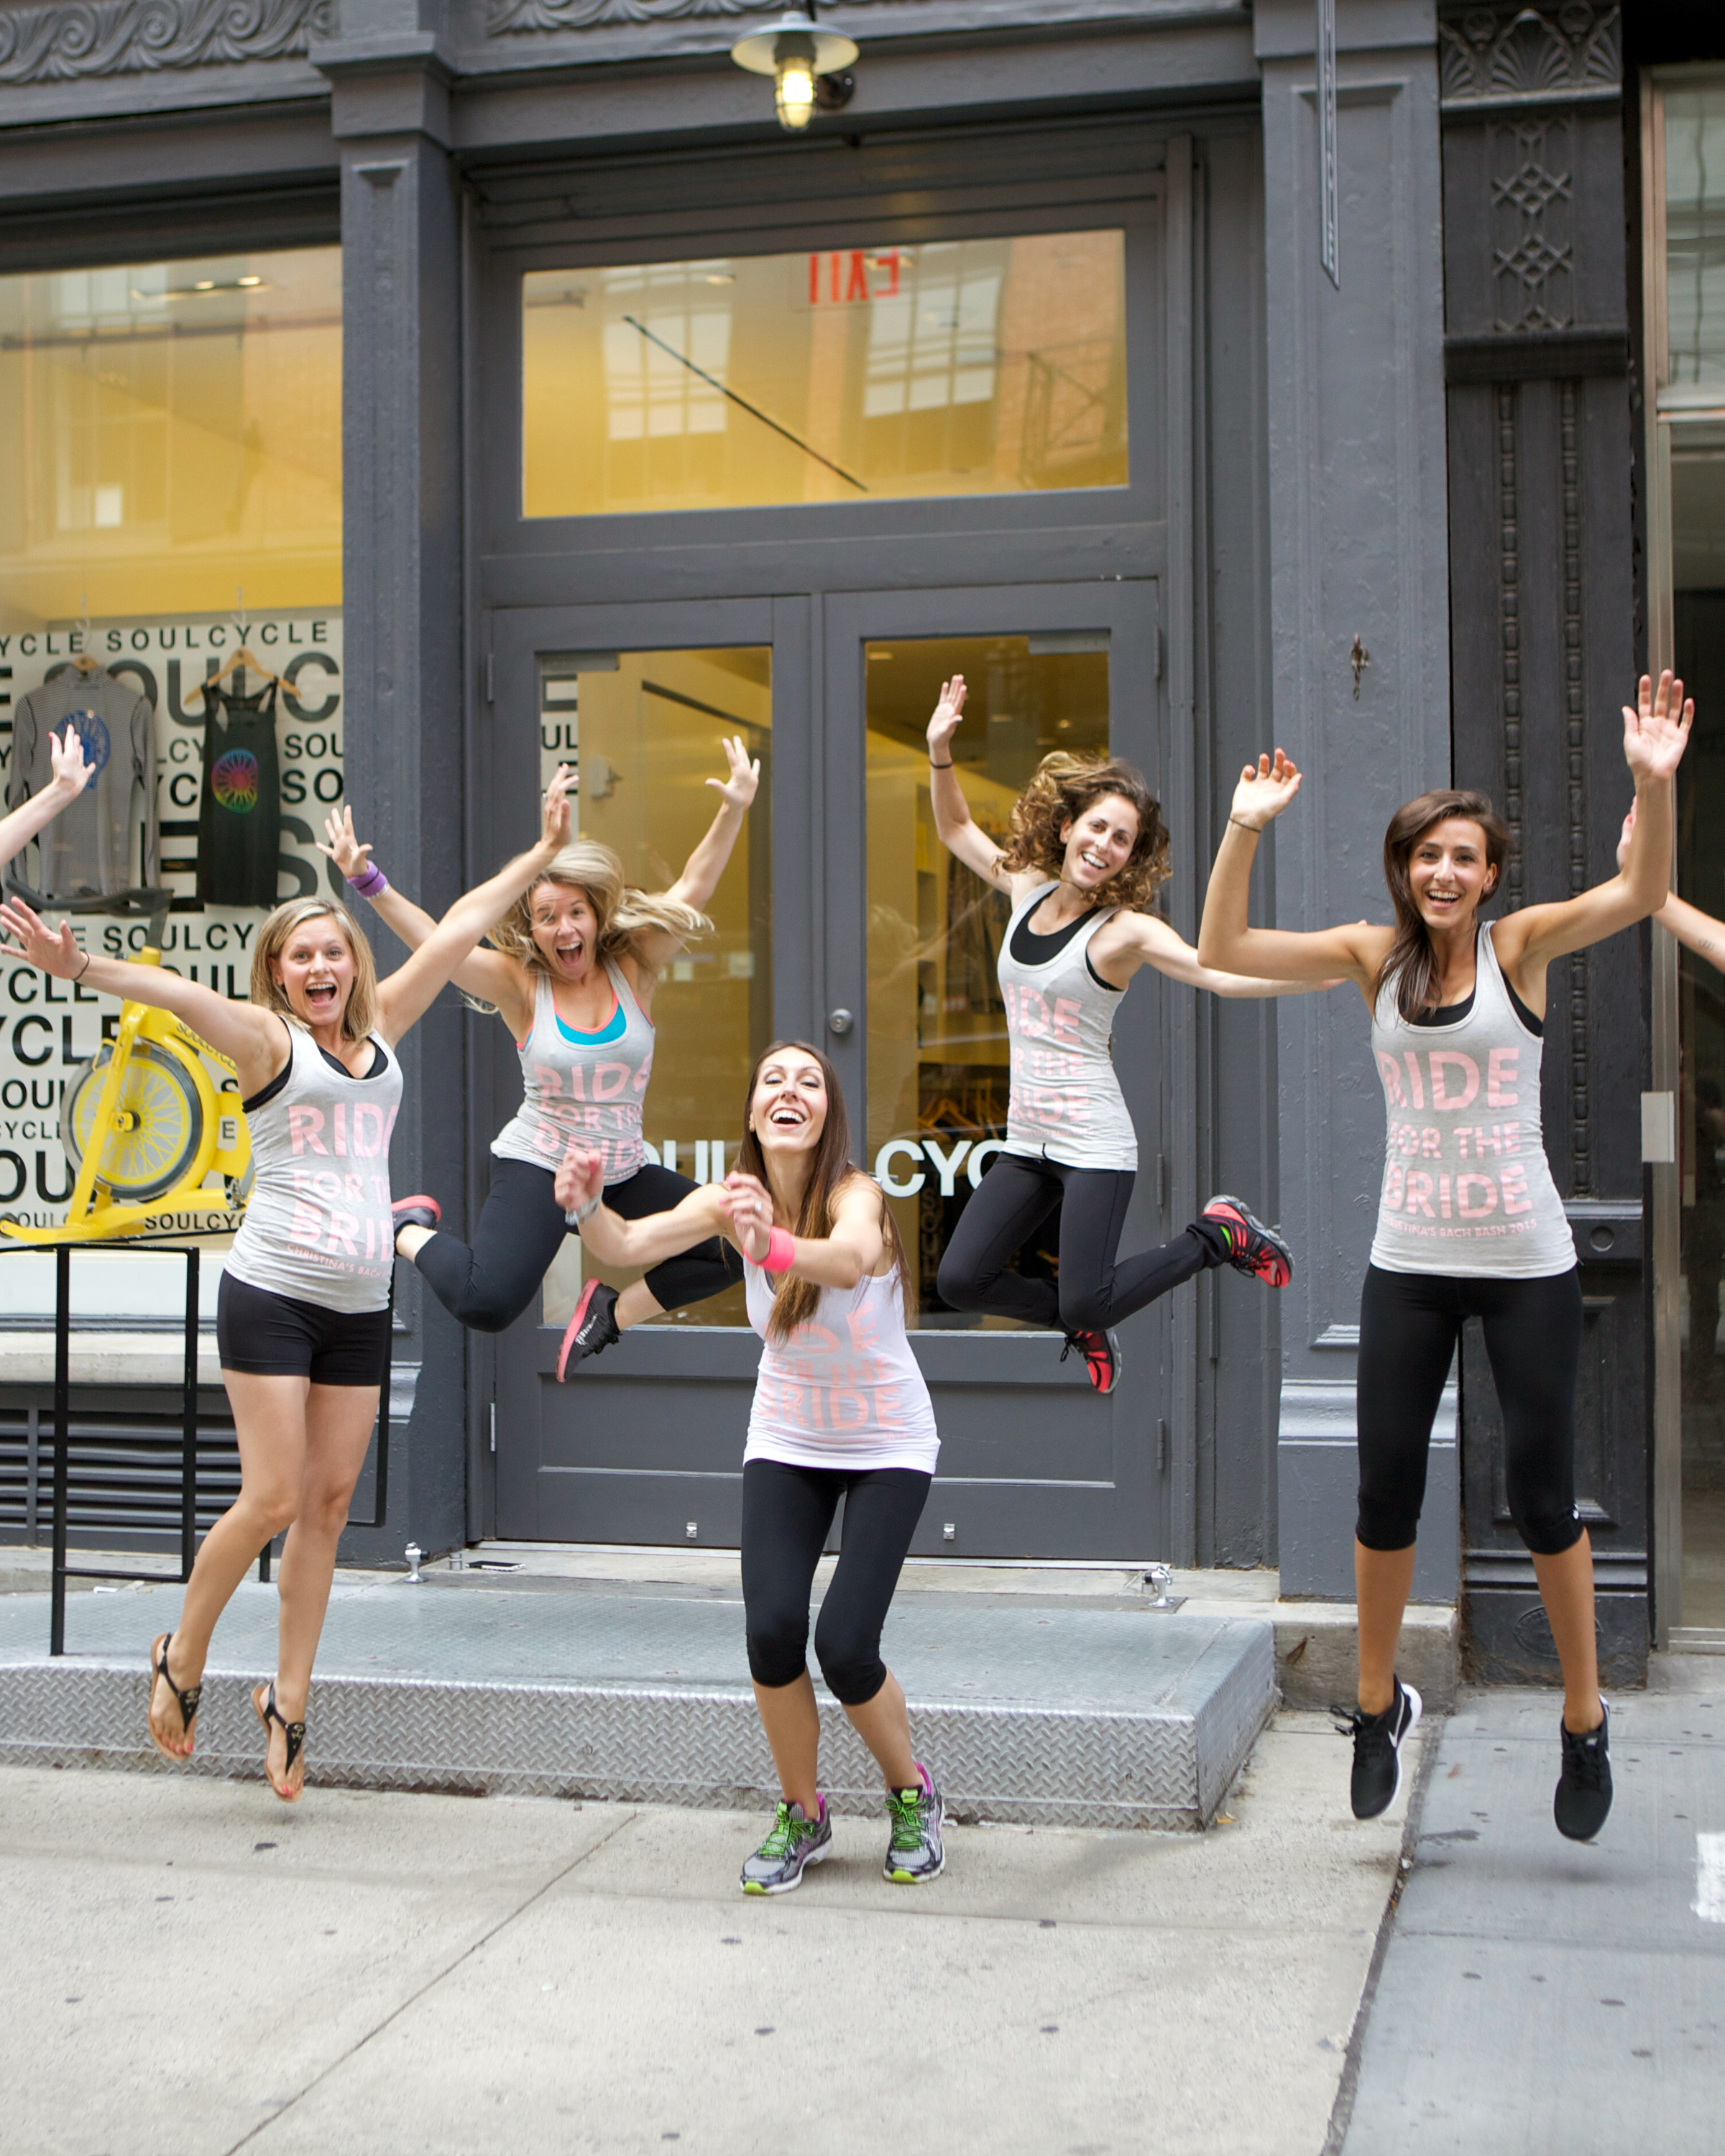 soulcycle-christina-bachelorette-party-arrival-0815.jpg